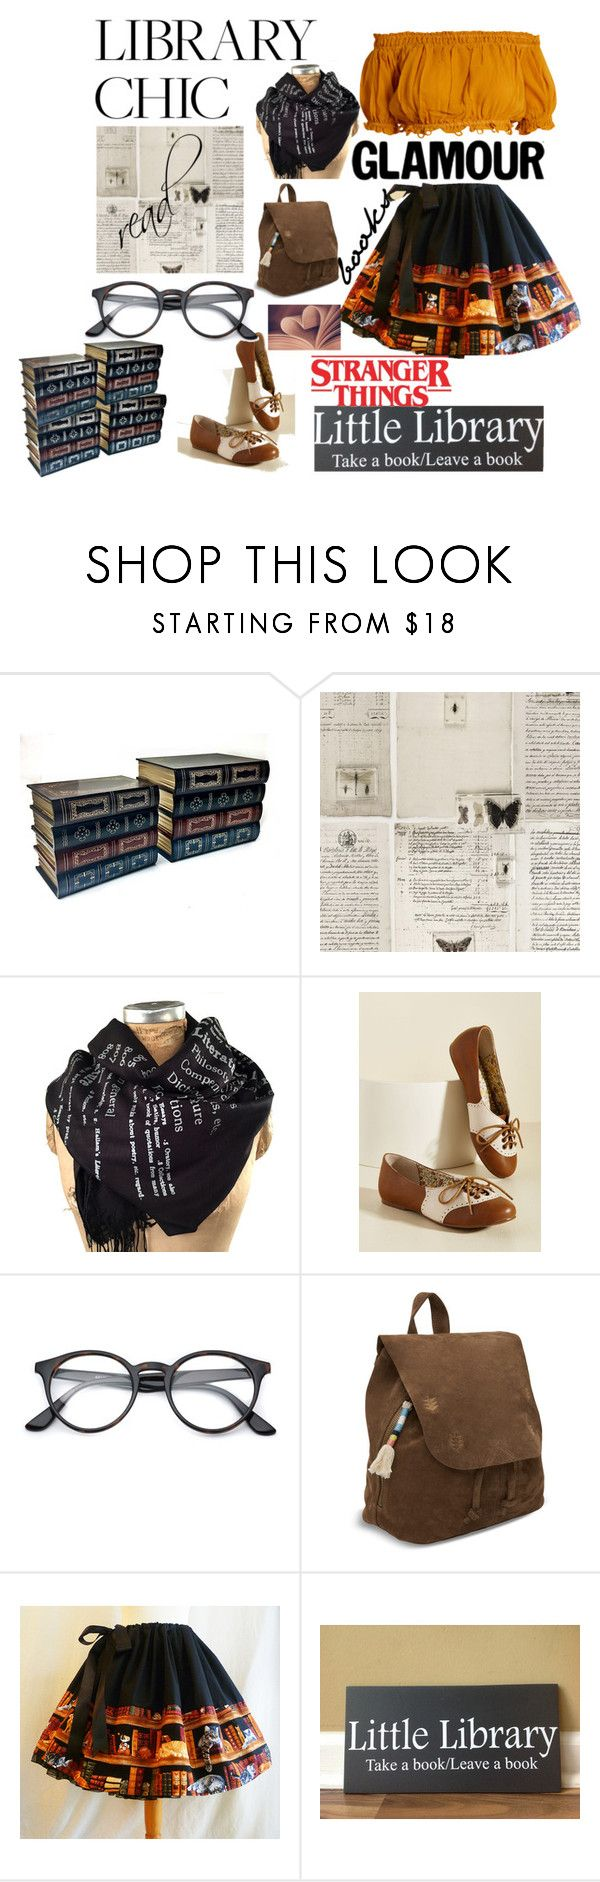 """""""the.silence.shhhhh.😶😶"""" by khushurao ❤ liked on Polyvore featuring WALL, Bettie Page, TOMS and Apiece Apart"""